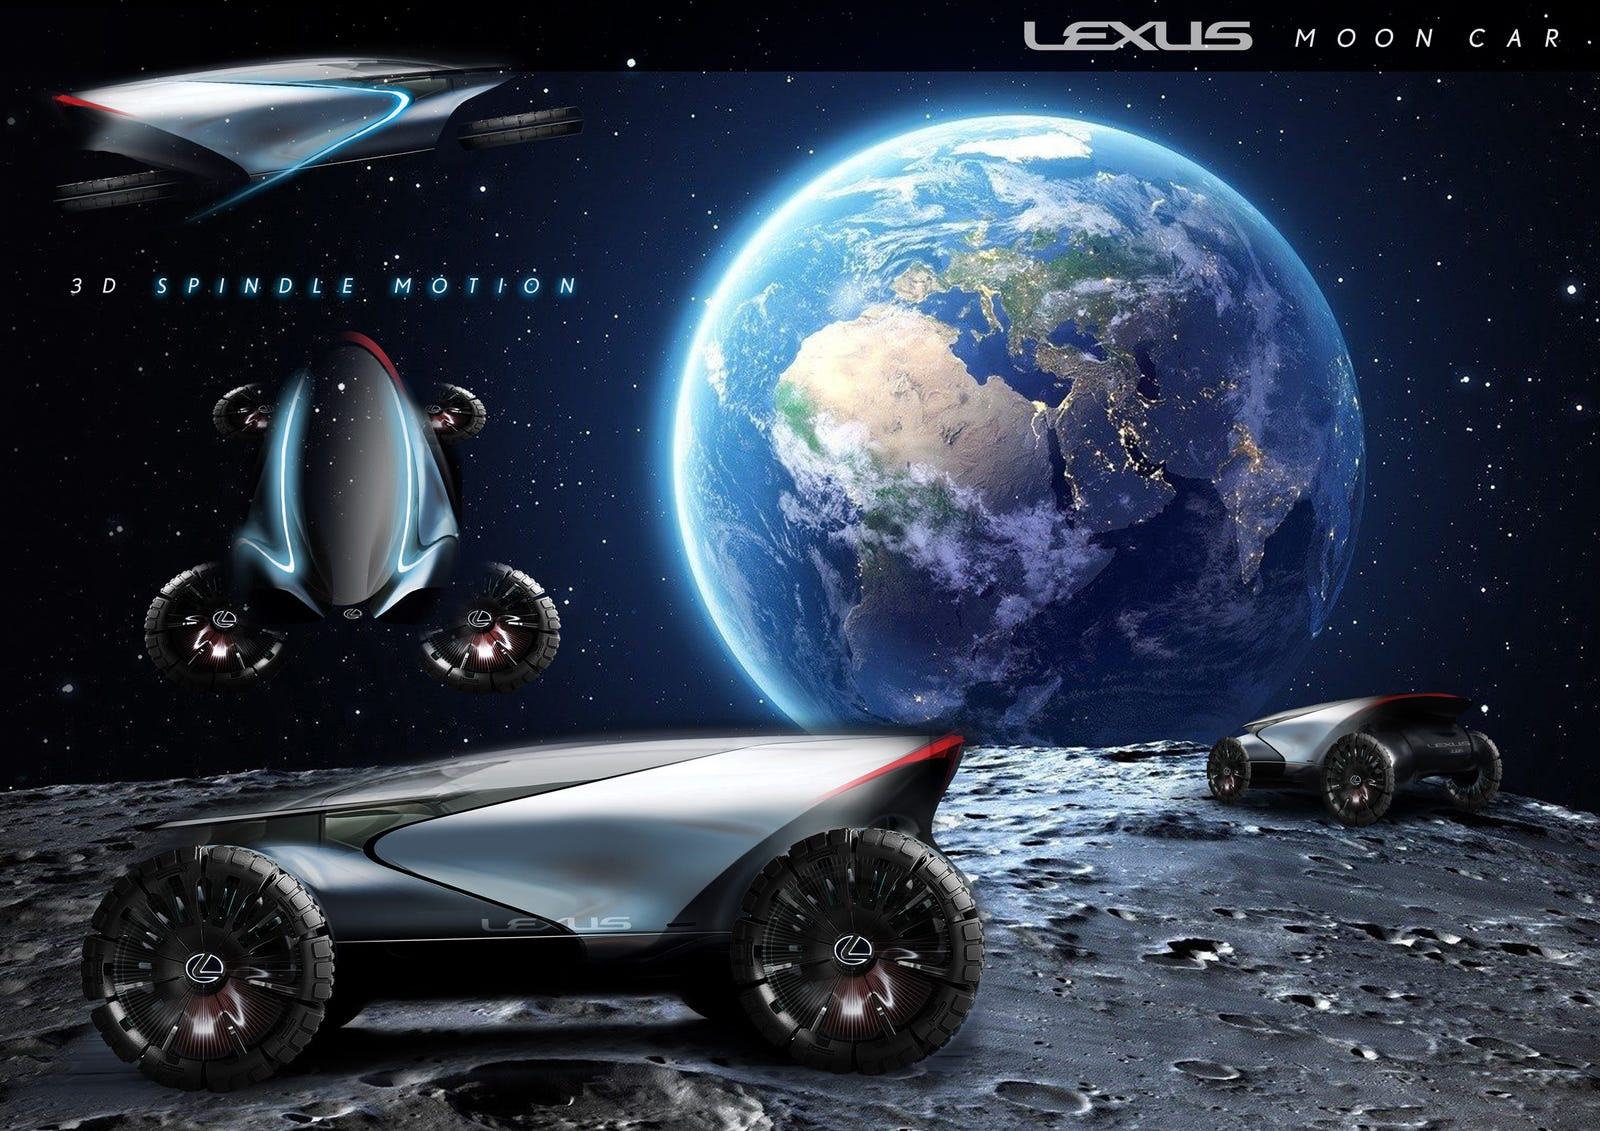 "The Lexus ""Lunar Cruiser"" is a multipurpose vehicle for land and sky use on the moon. It has large tires that provide comfortable movement even on rough lunar conditions and can turn 90 degrees to fly like a drone. These allow the driver to explore the lunar land and sky freely. The organically shaped cabin has a unique body graphic in the shape of a ""3D spindle motion,"" providing an open vision and comfortable interior space while having an iconic appearance."